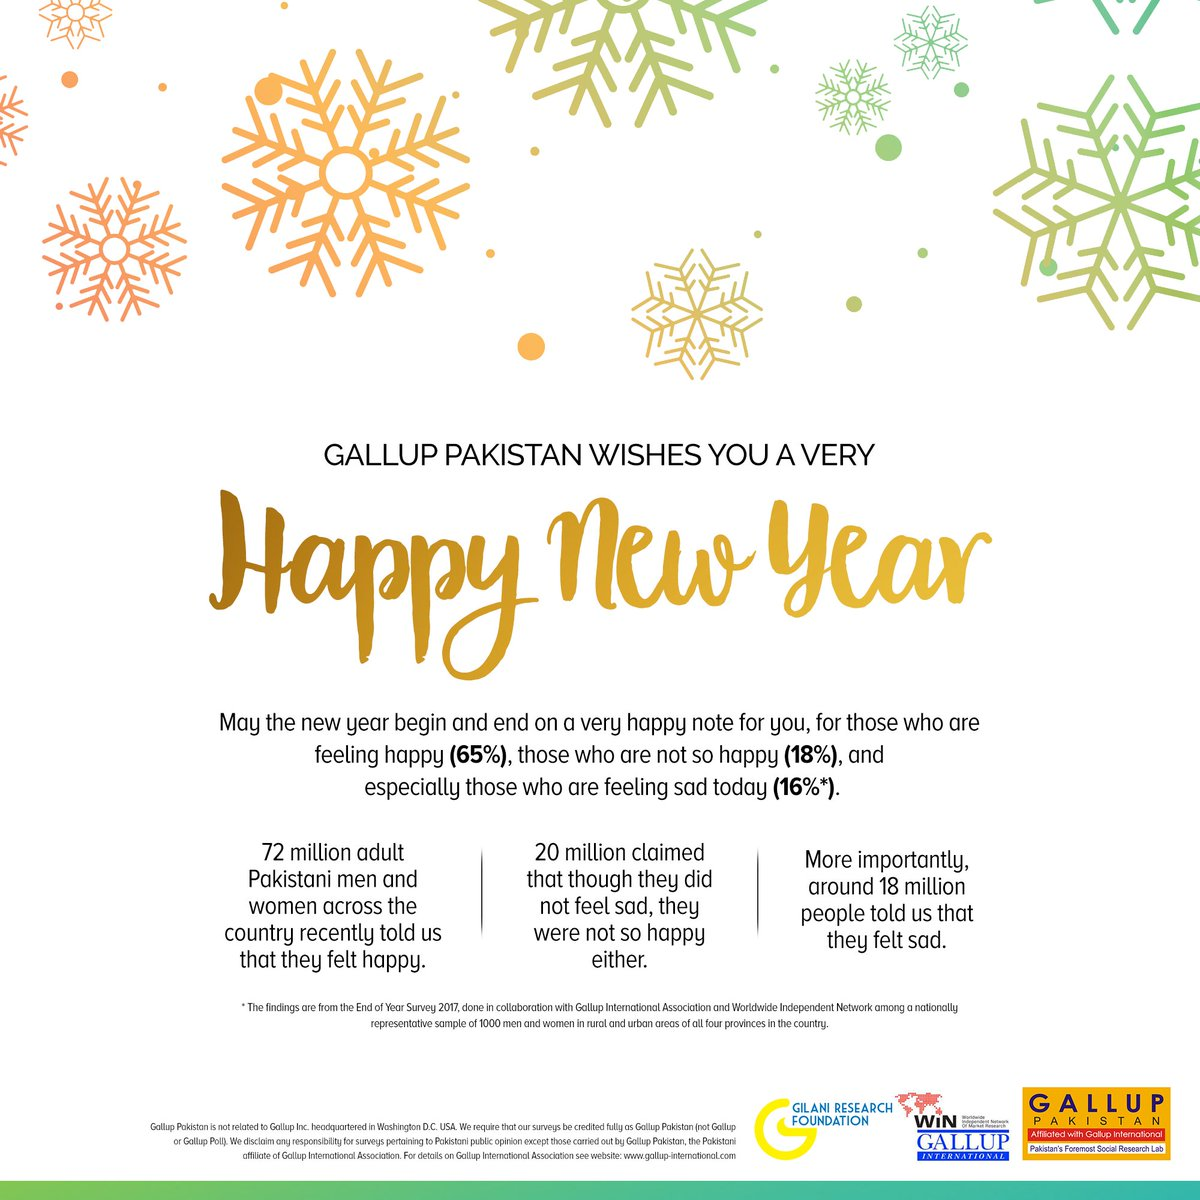 Gallup Pakistan On Twitter Happy New Year And Seasons Greetings